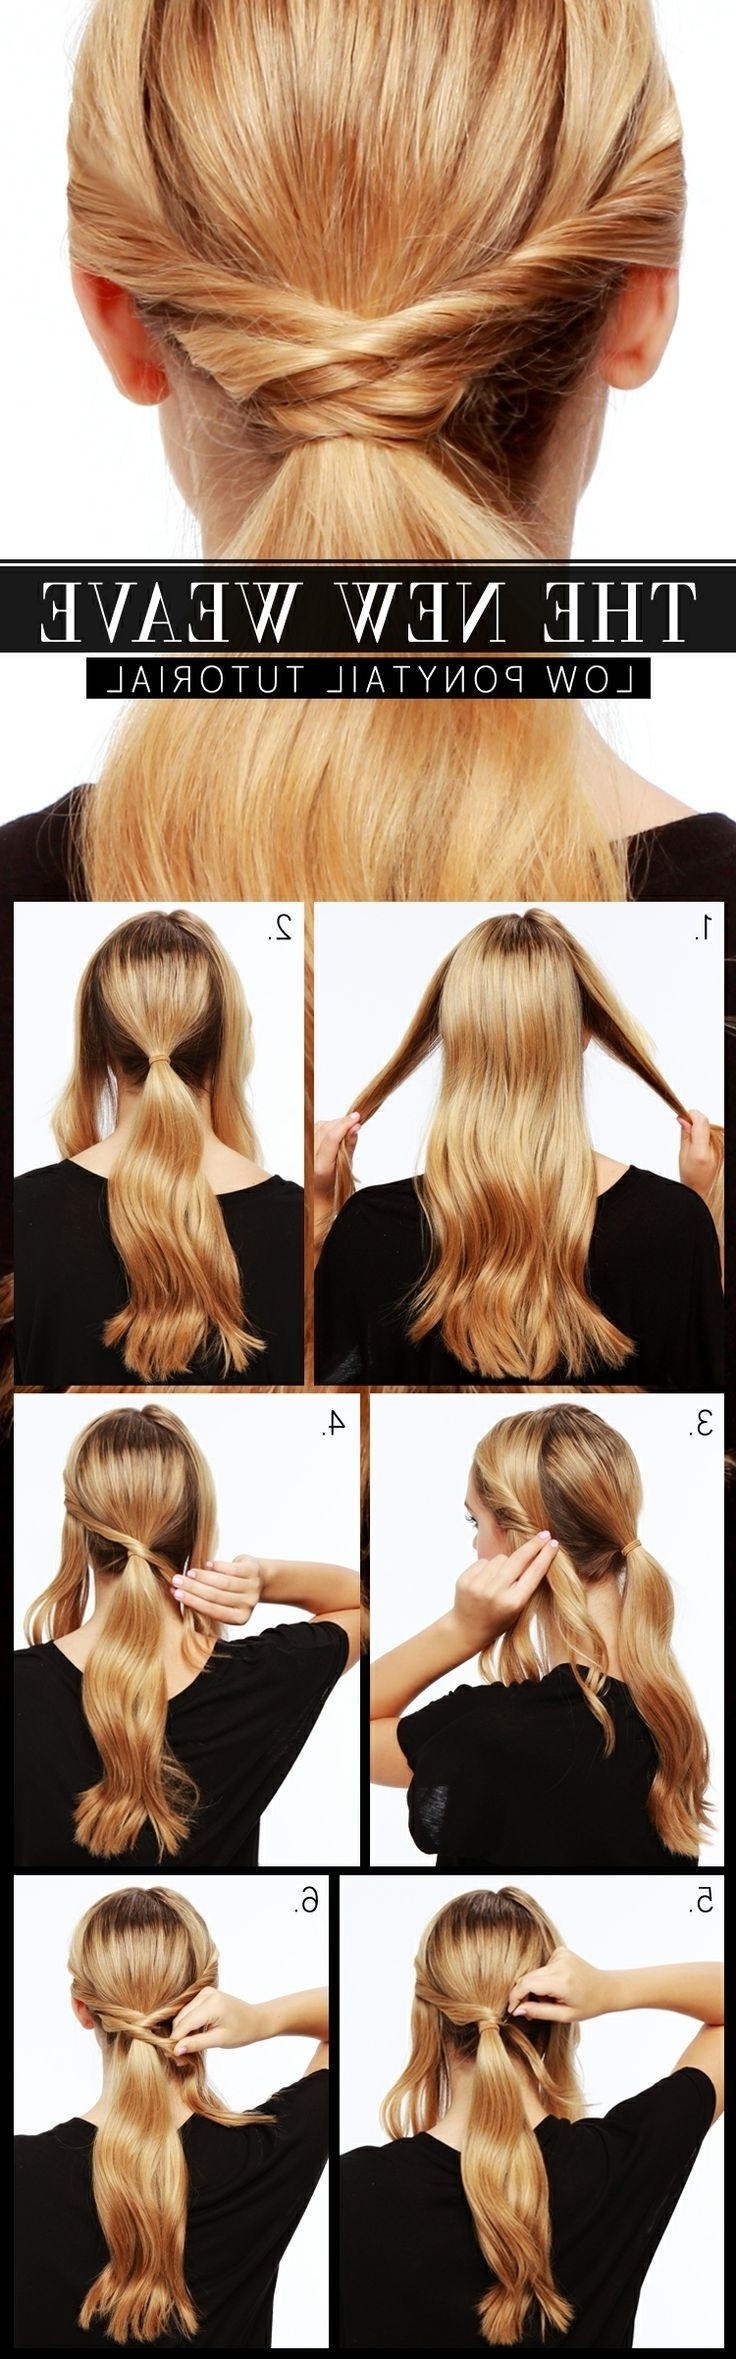 Current Twisted And Pinned Blonde Ponytails For 15 Cute And Easy Ponytail Hairstyles Tutorials – Popular Haircuts (View 10 of 20)